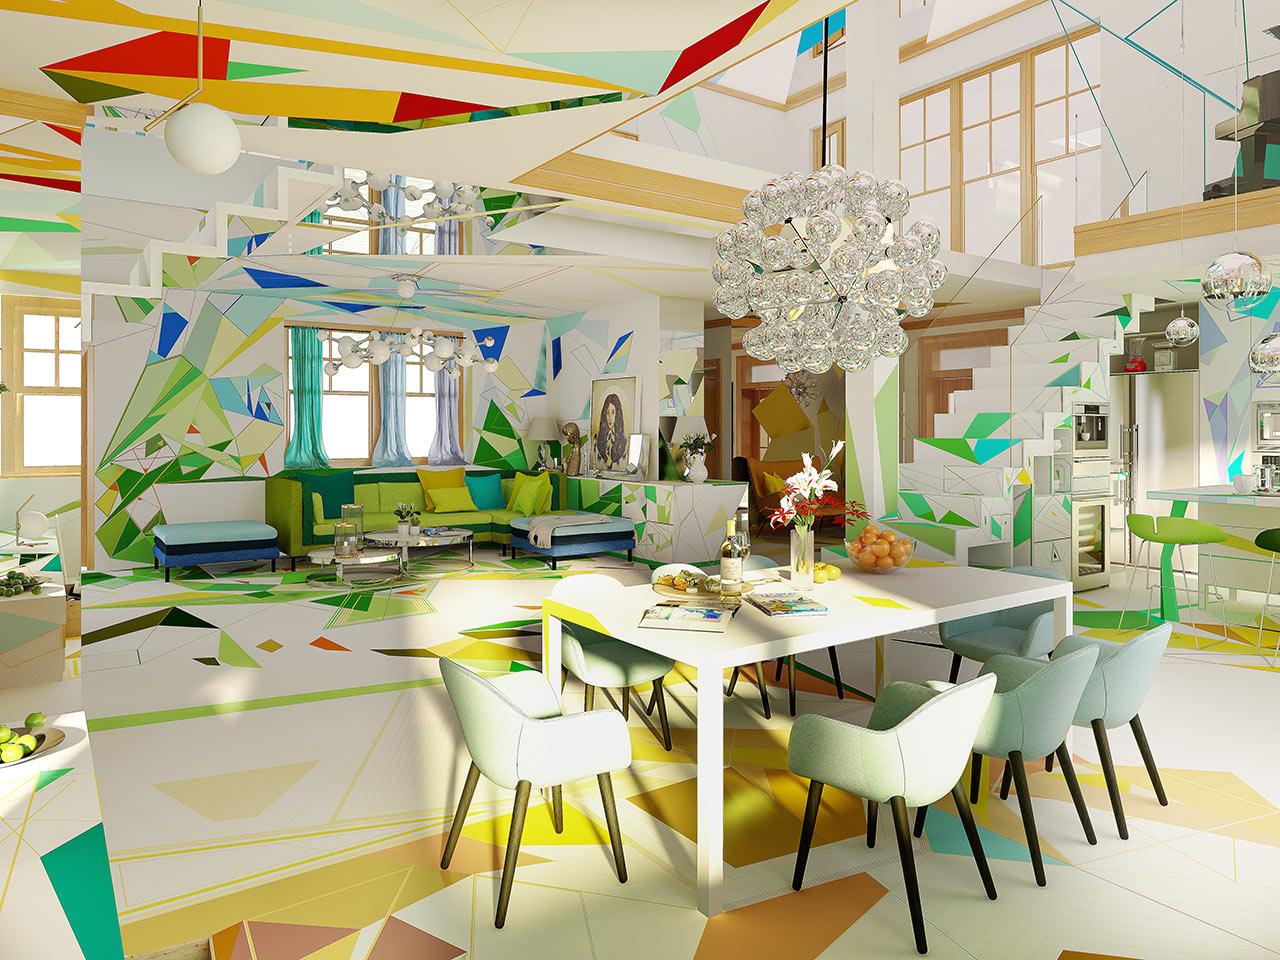 A Colorful, Geometric Wonderland That Might Feel Like You've Jumped Inside a Kaleidoscope